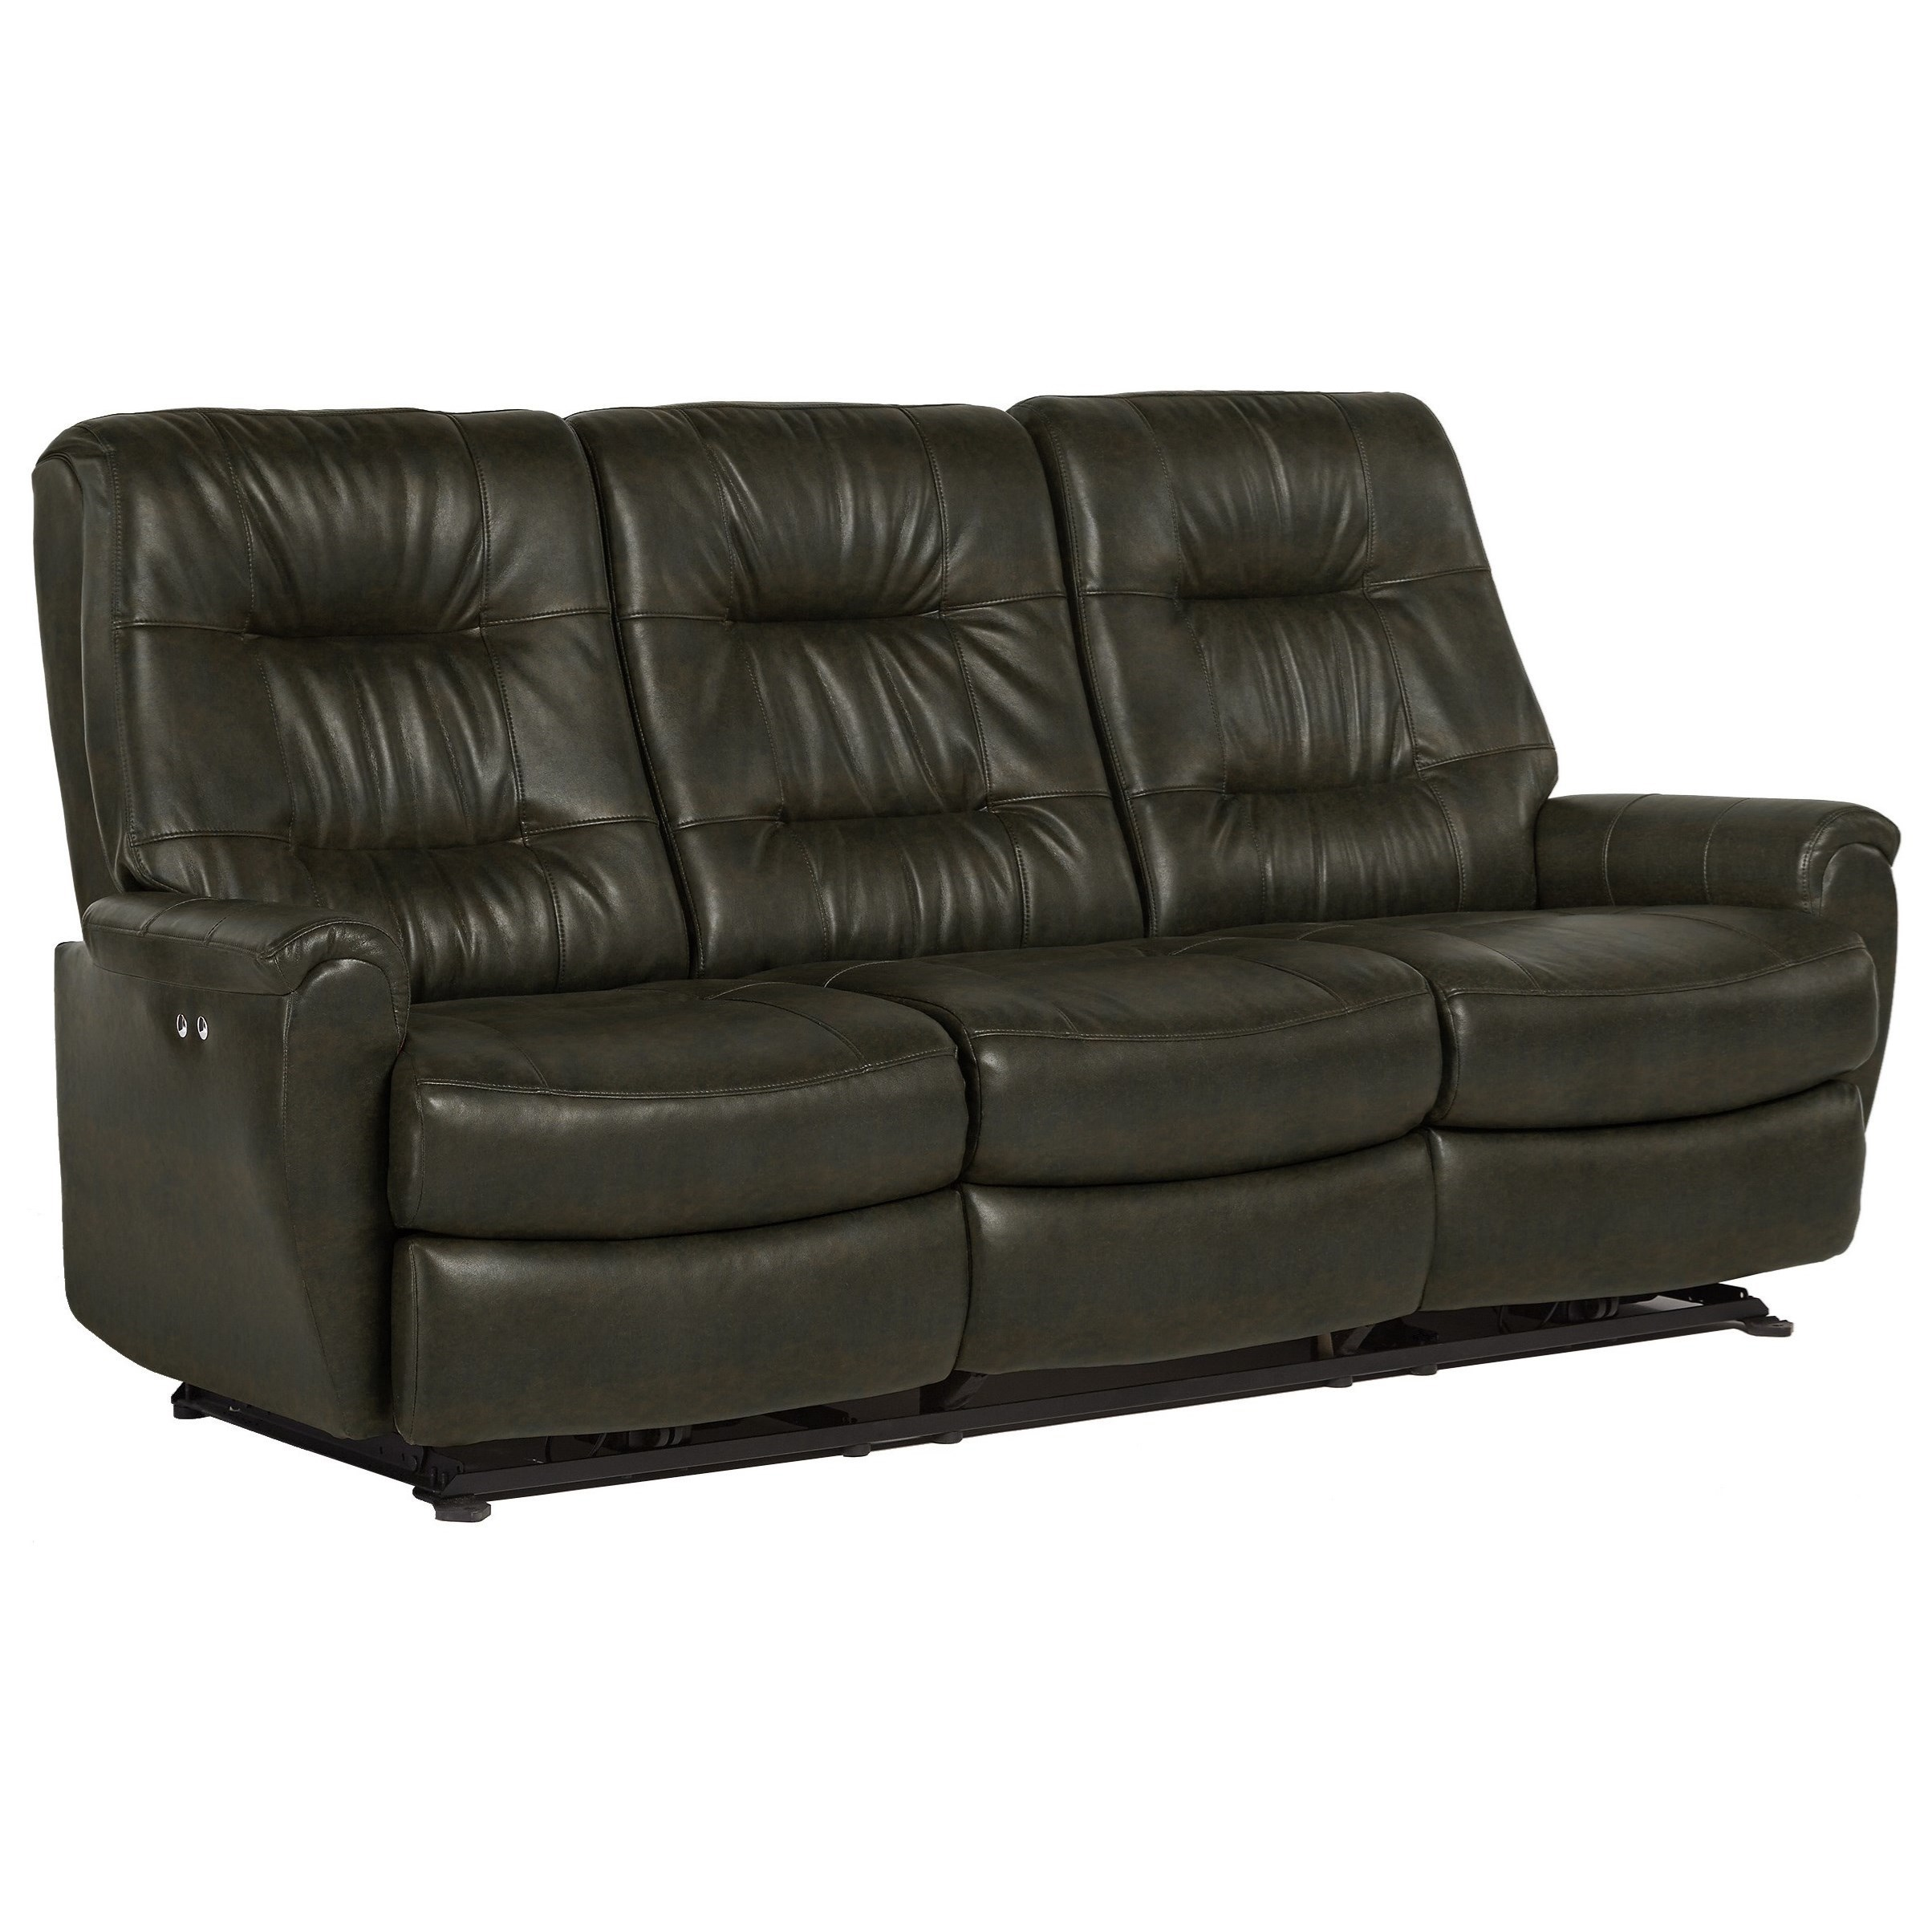 Best Home Furnishings Felicia Small-Scale Power Reclining Sofa with Chic Button Tufting  sc 1 st  Wayside Furniture : small reclining sofas - islam-shia.org